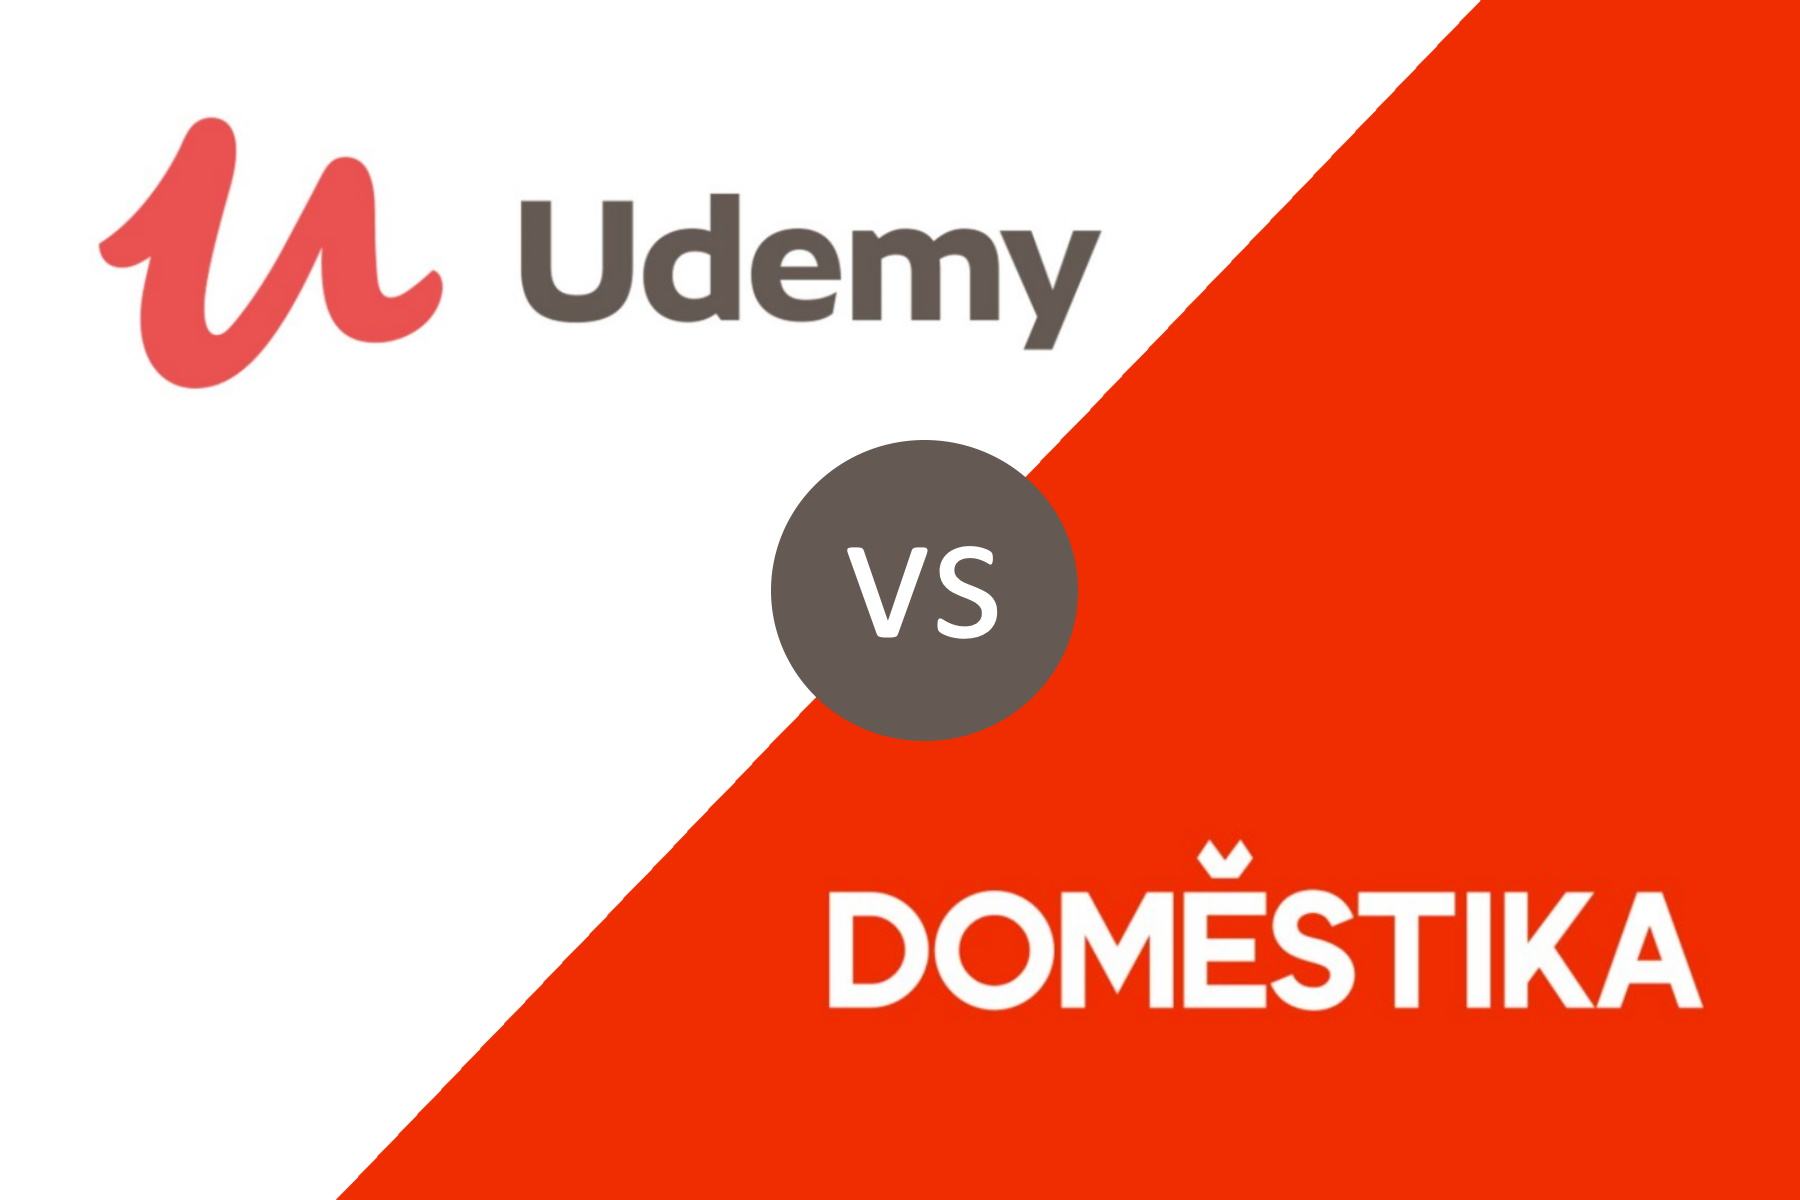 Udemy vs Domestika